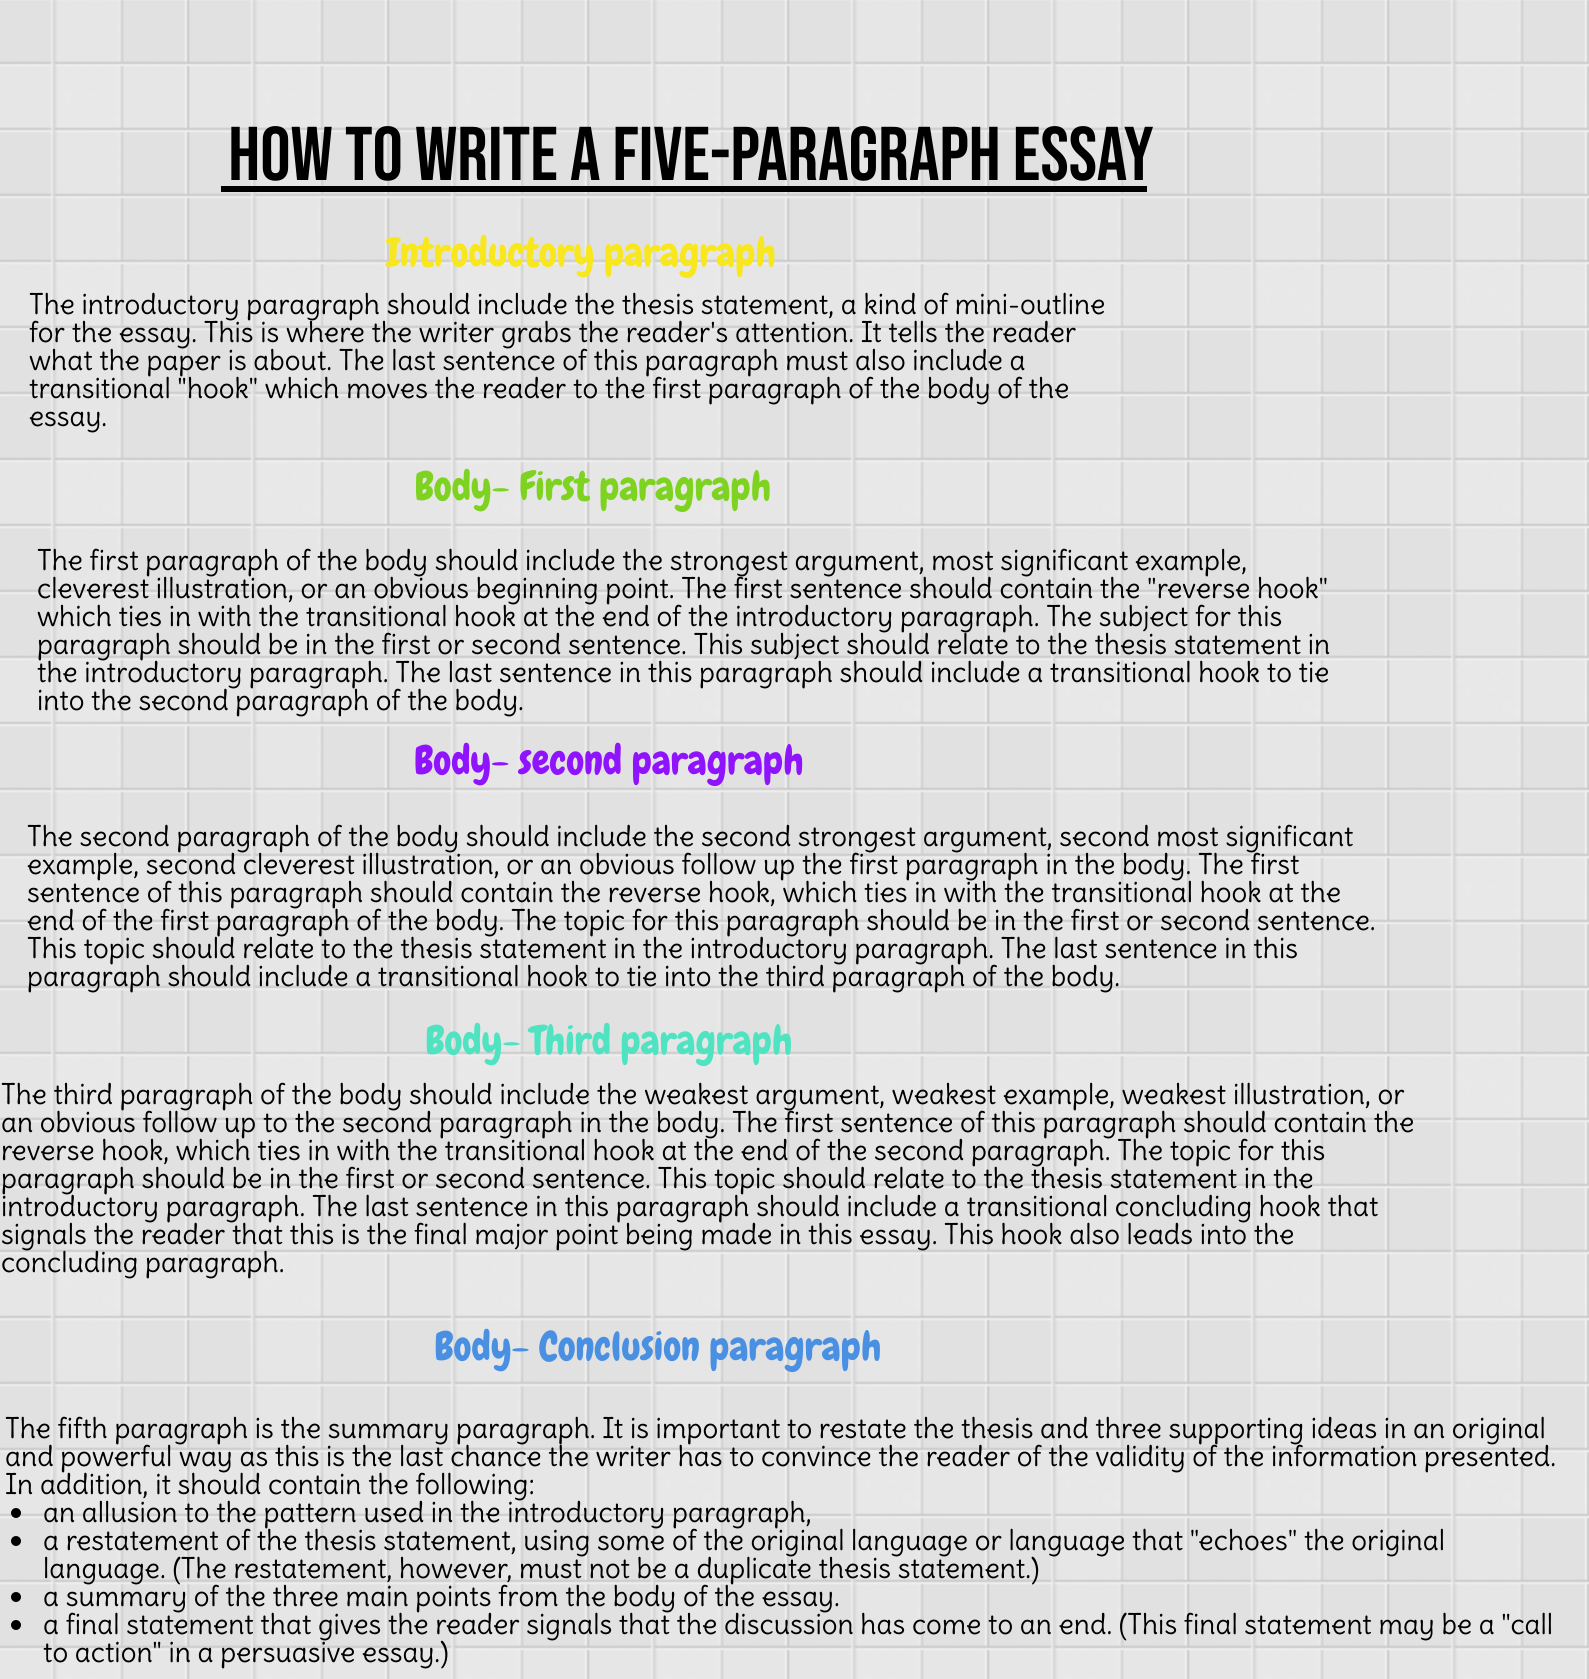 26 paragraph essay outline- #essay #outlineeducation